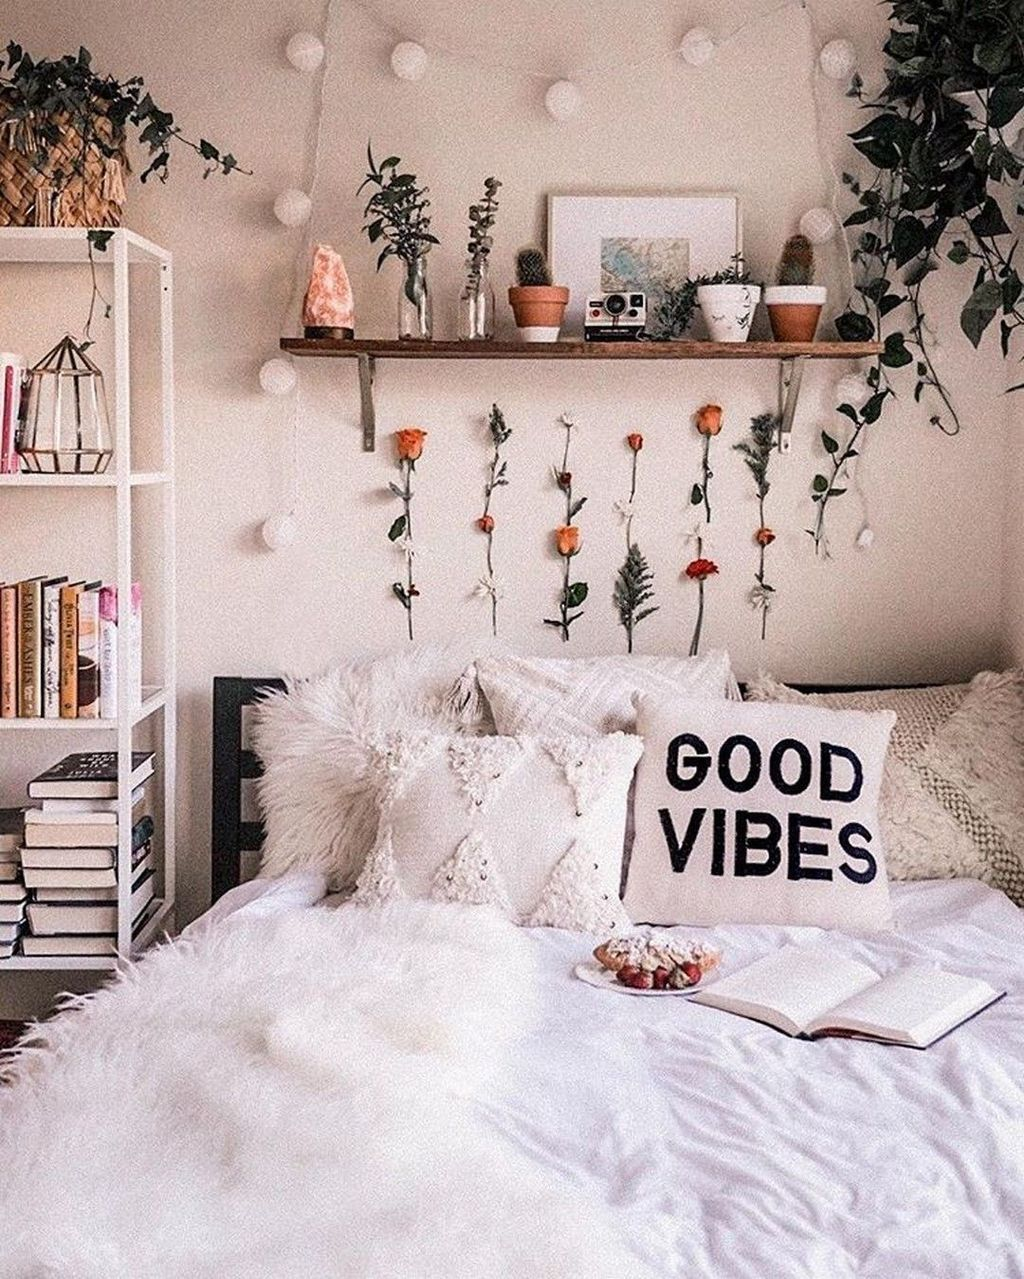 The Best DIY Bedroom Decor Ideas You Have To Try 05